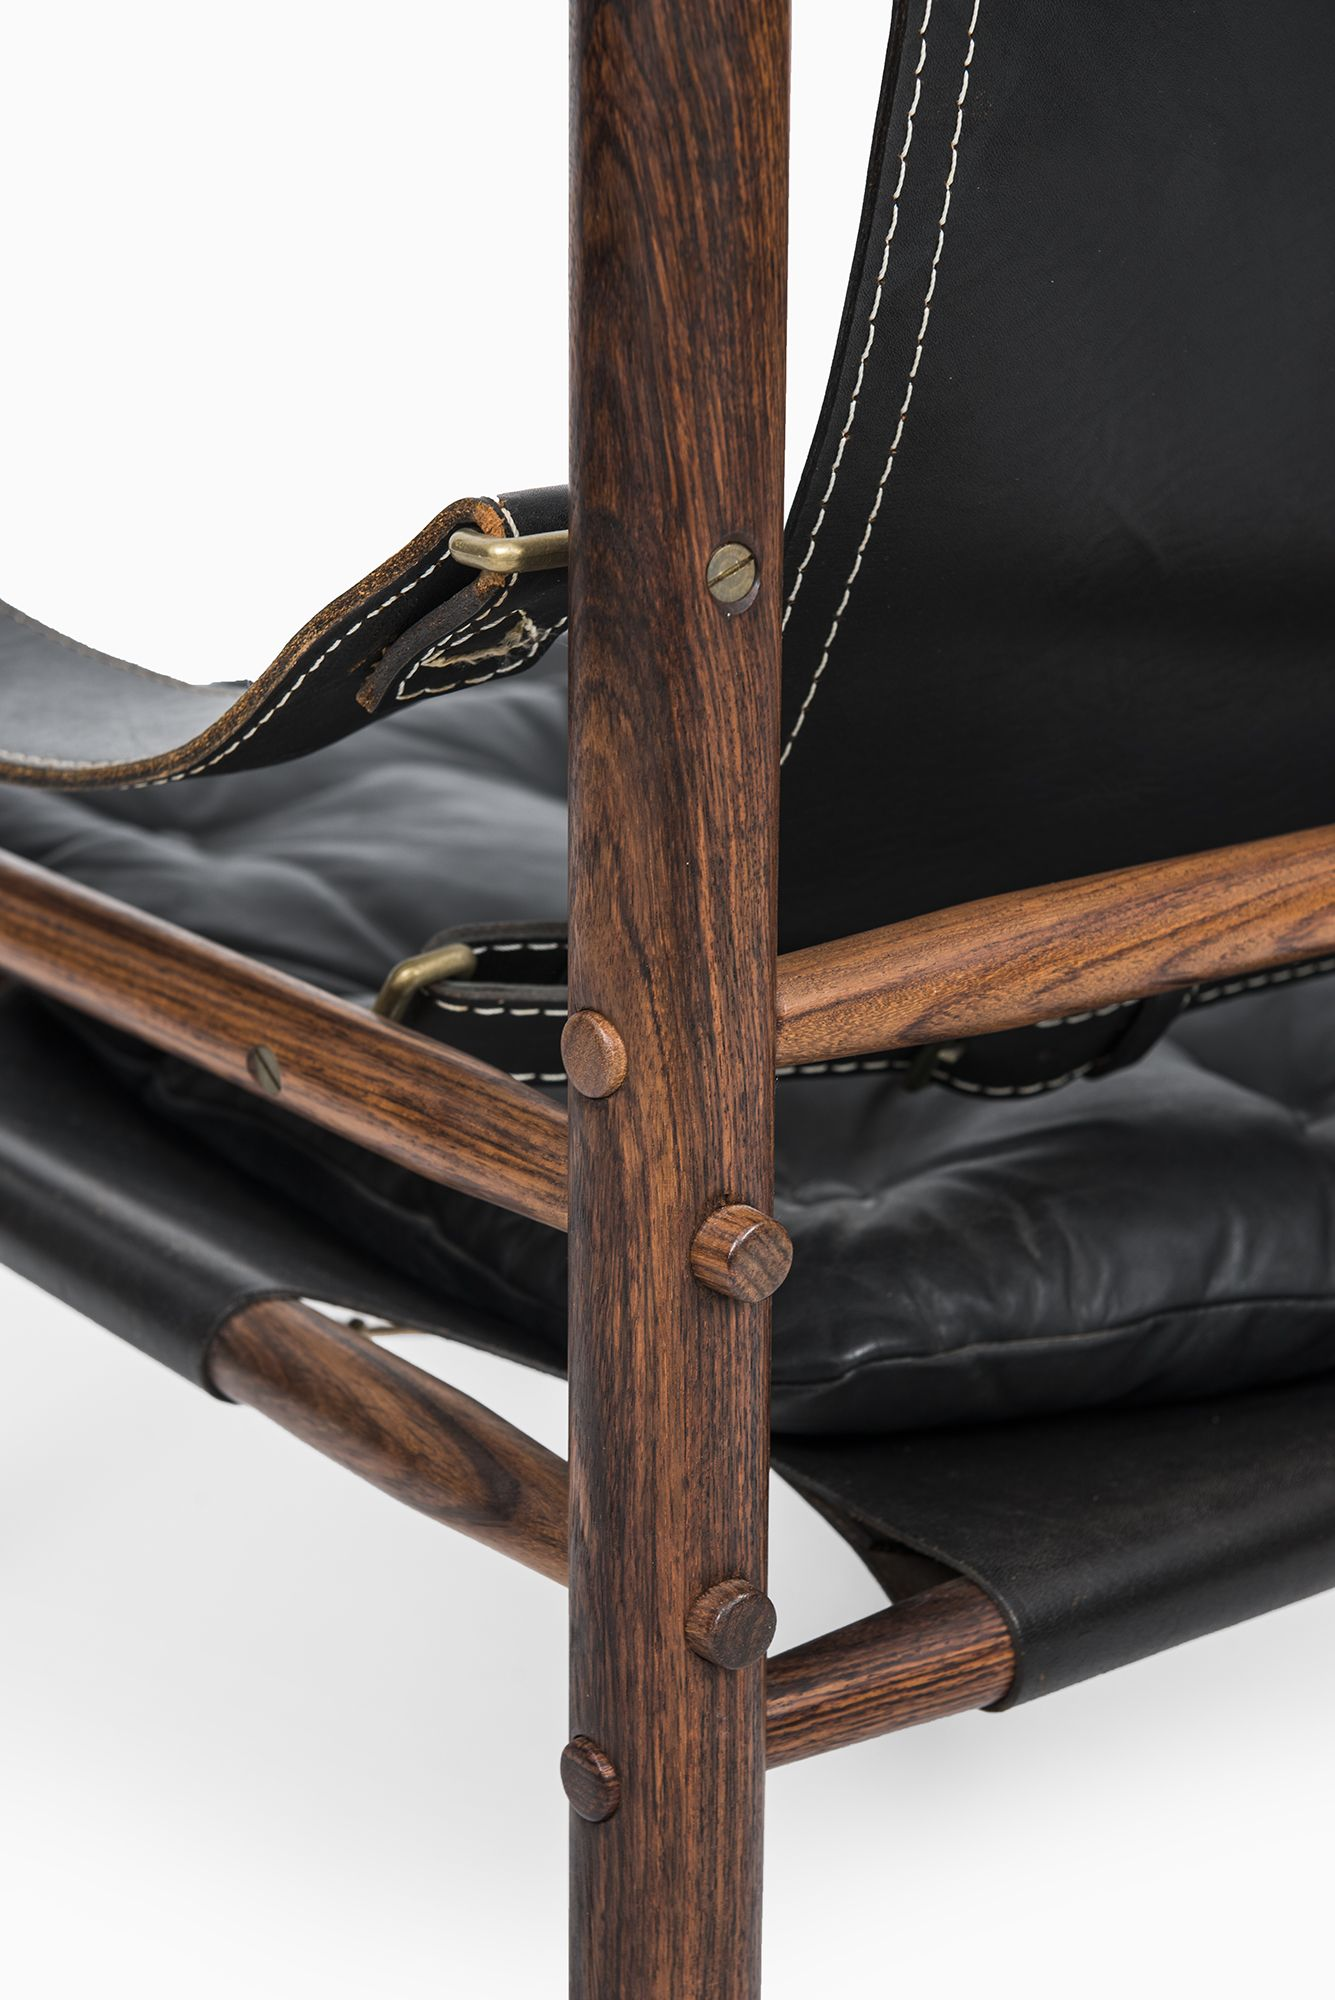 Arne Norell Sirocco in rosewood and black leather at Studio Schalling